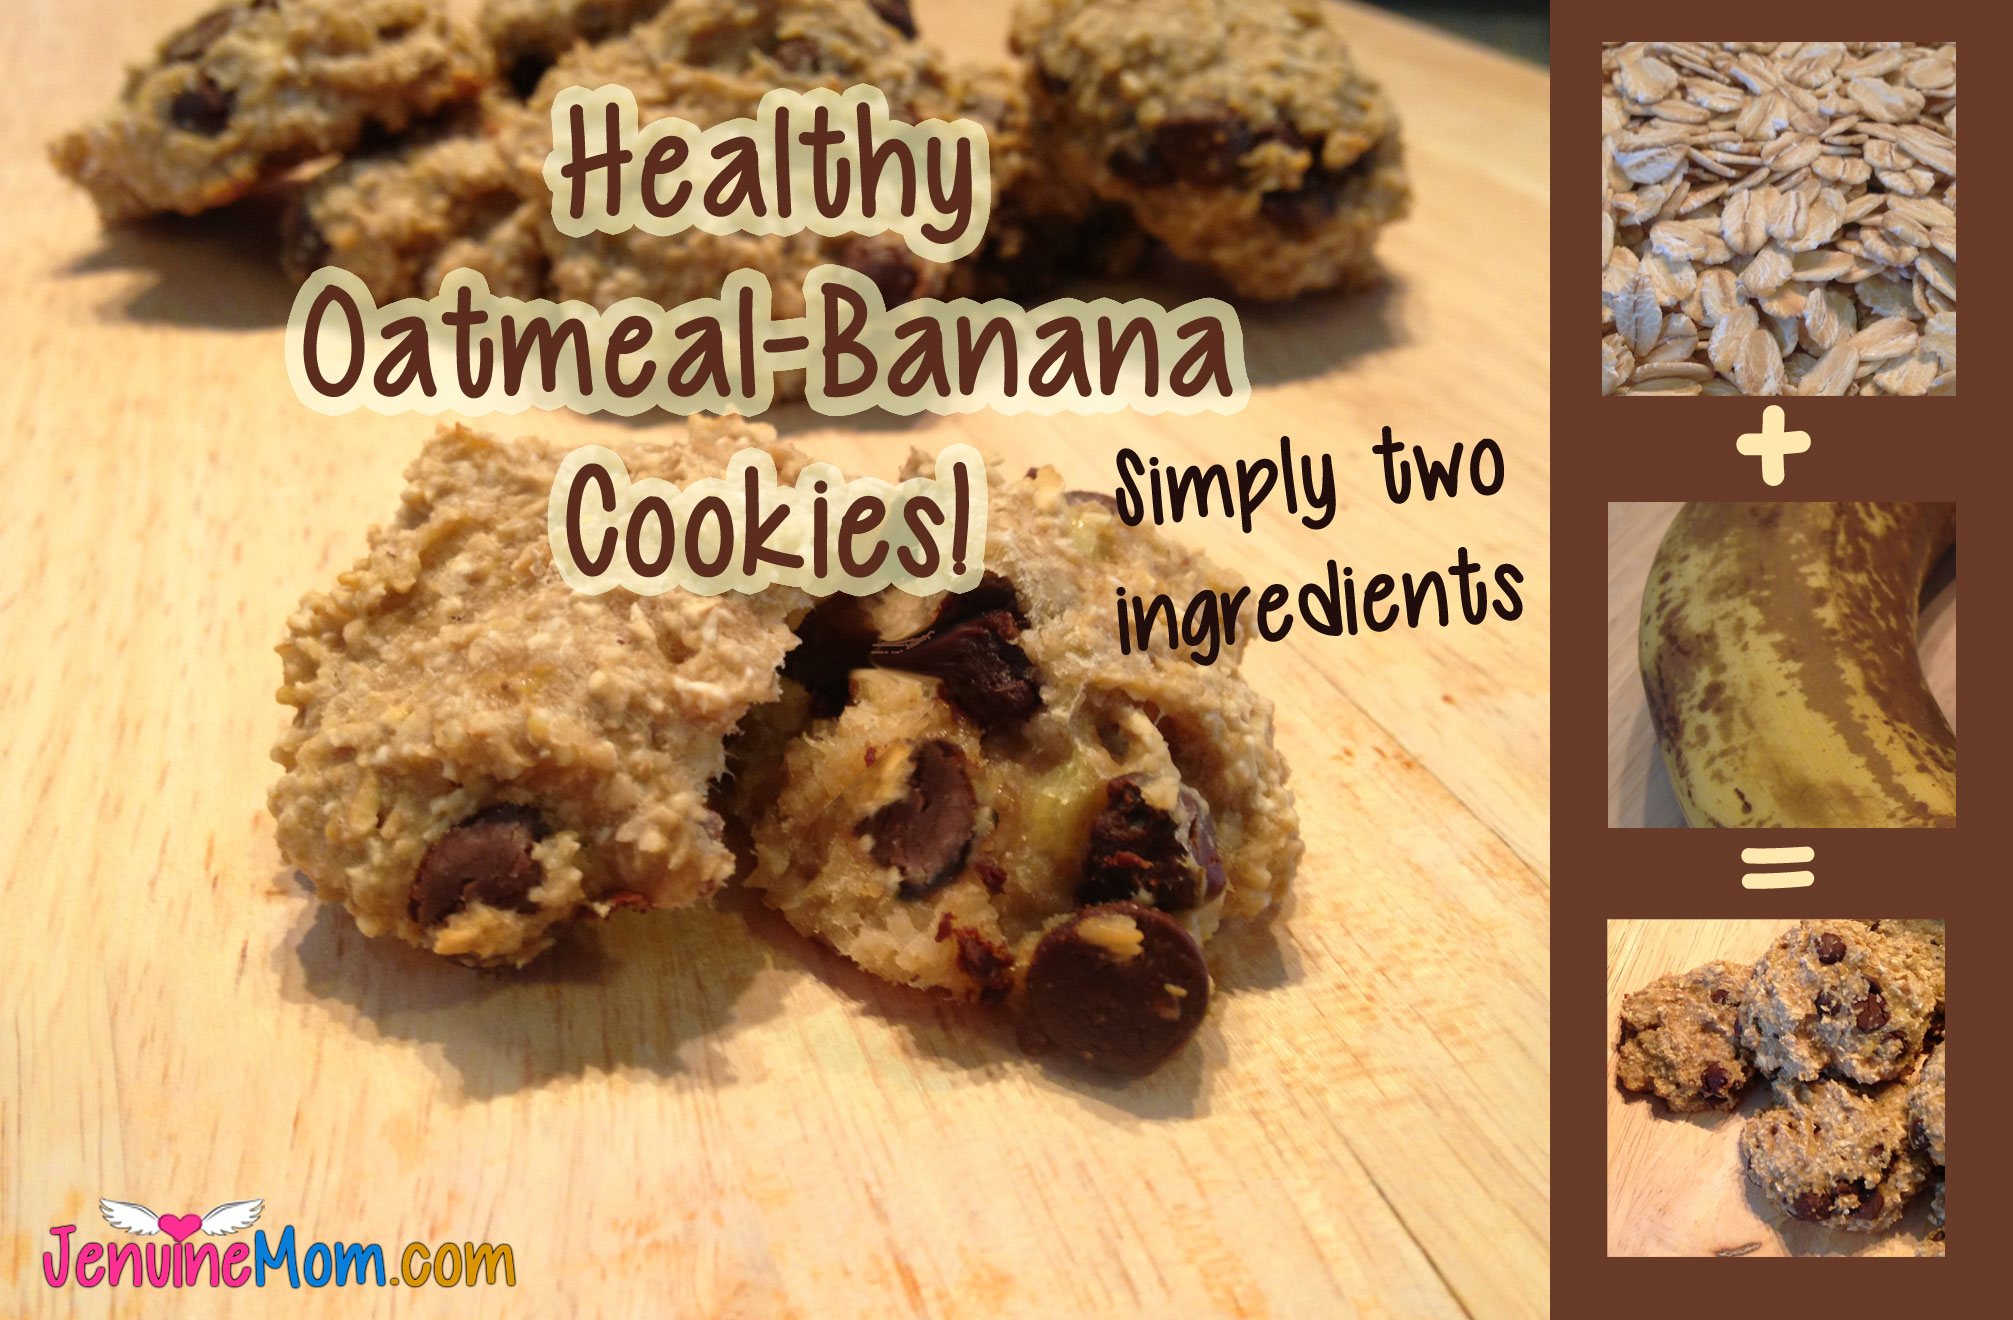 Healthy Oatmeal-Banana Cookies